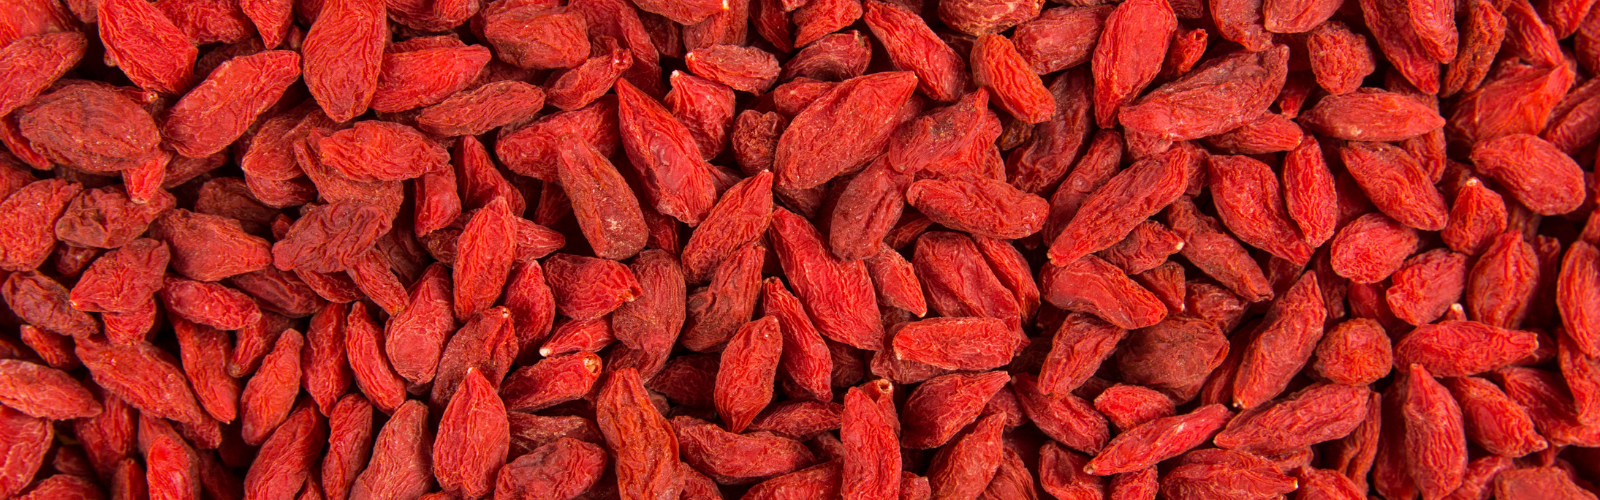 Goji berries - Fruits to Increase Sperm Count and Motility